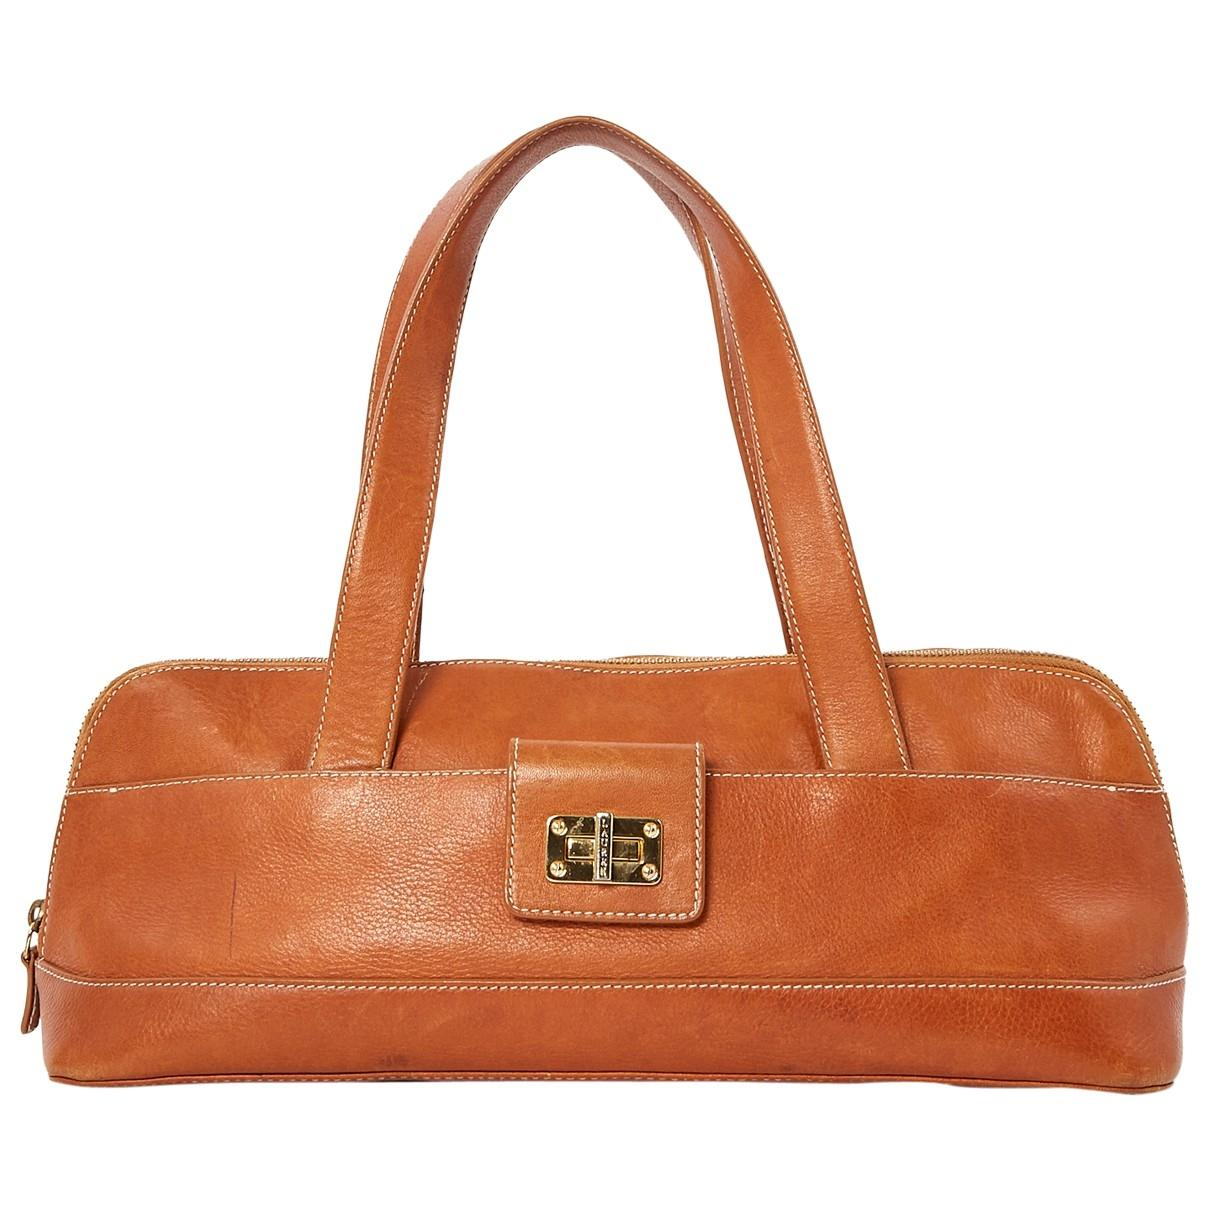 dec65a3f9fa7 Ralph Lauren Collection. Women s Brown Leather Handbag. £219 From Vestiaire  Collective